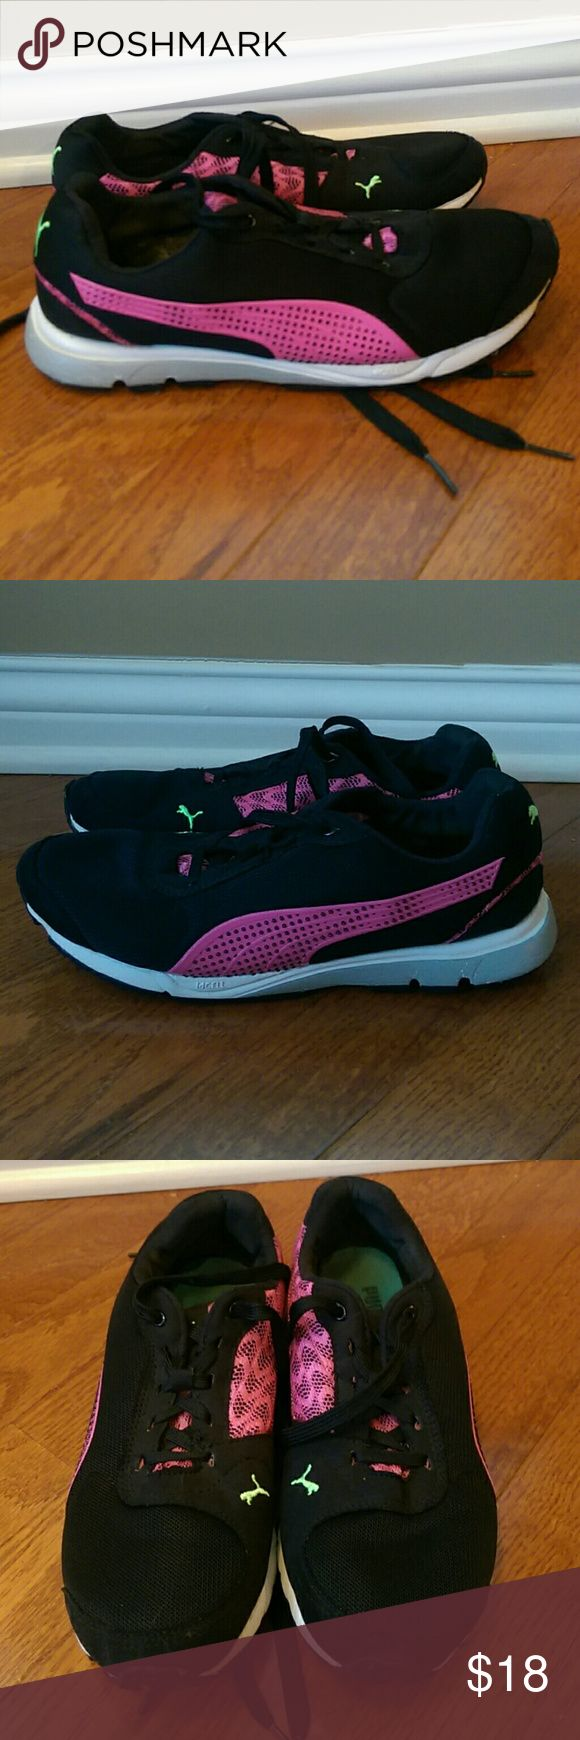 Puma Running Pink & Black Size 7.5 Good condition. Some wear to insole and tread. Very light scuffing to the front. Pictures show more detail. Puma Shoes Athletic Shoes